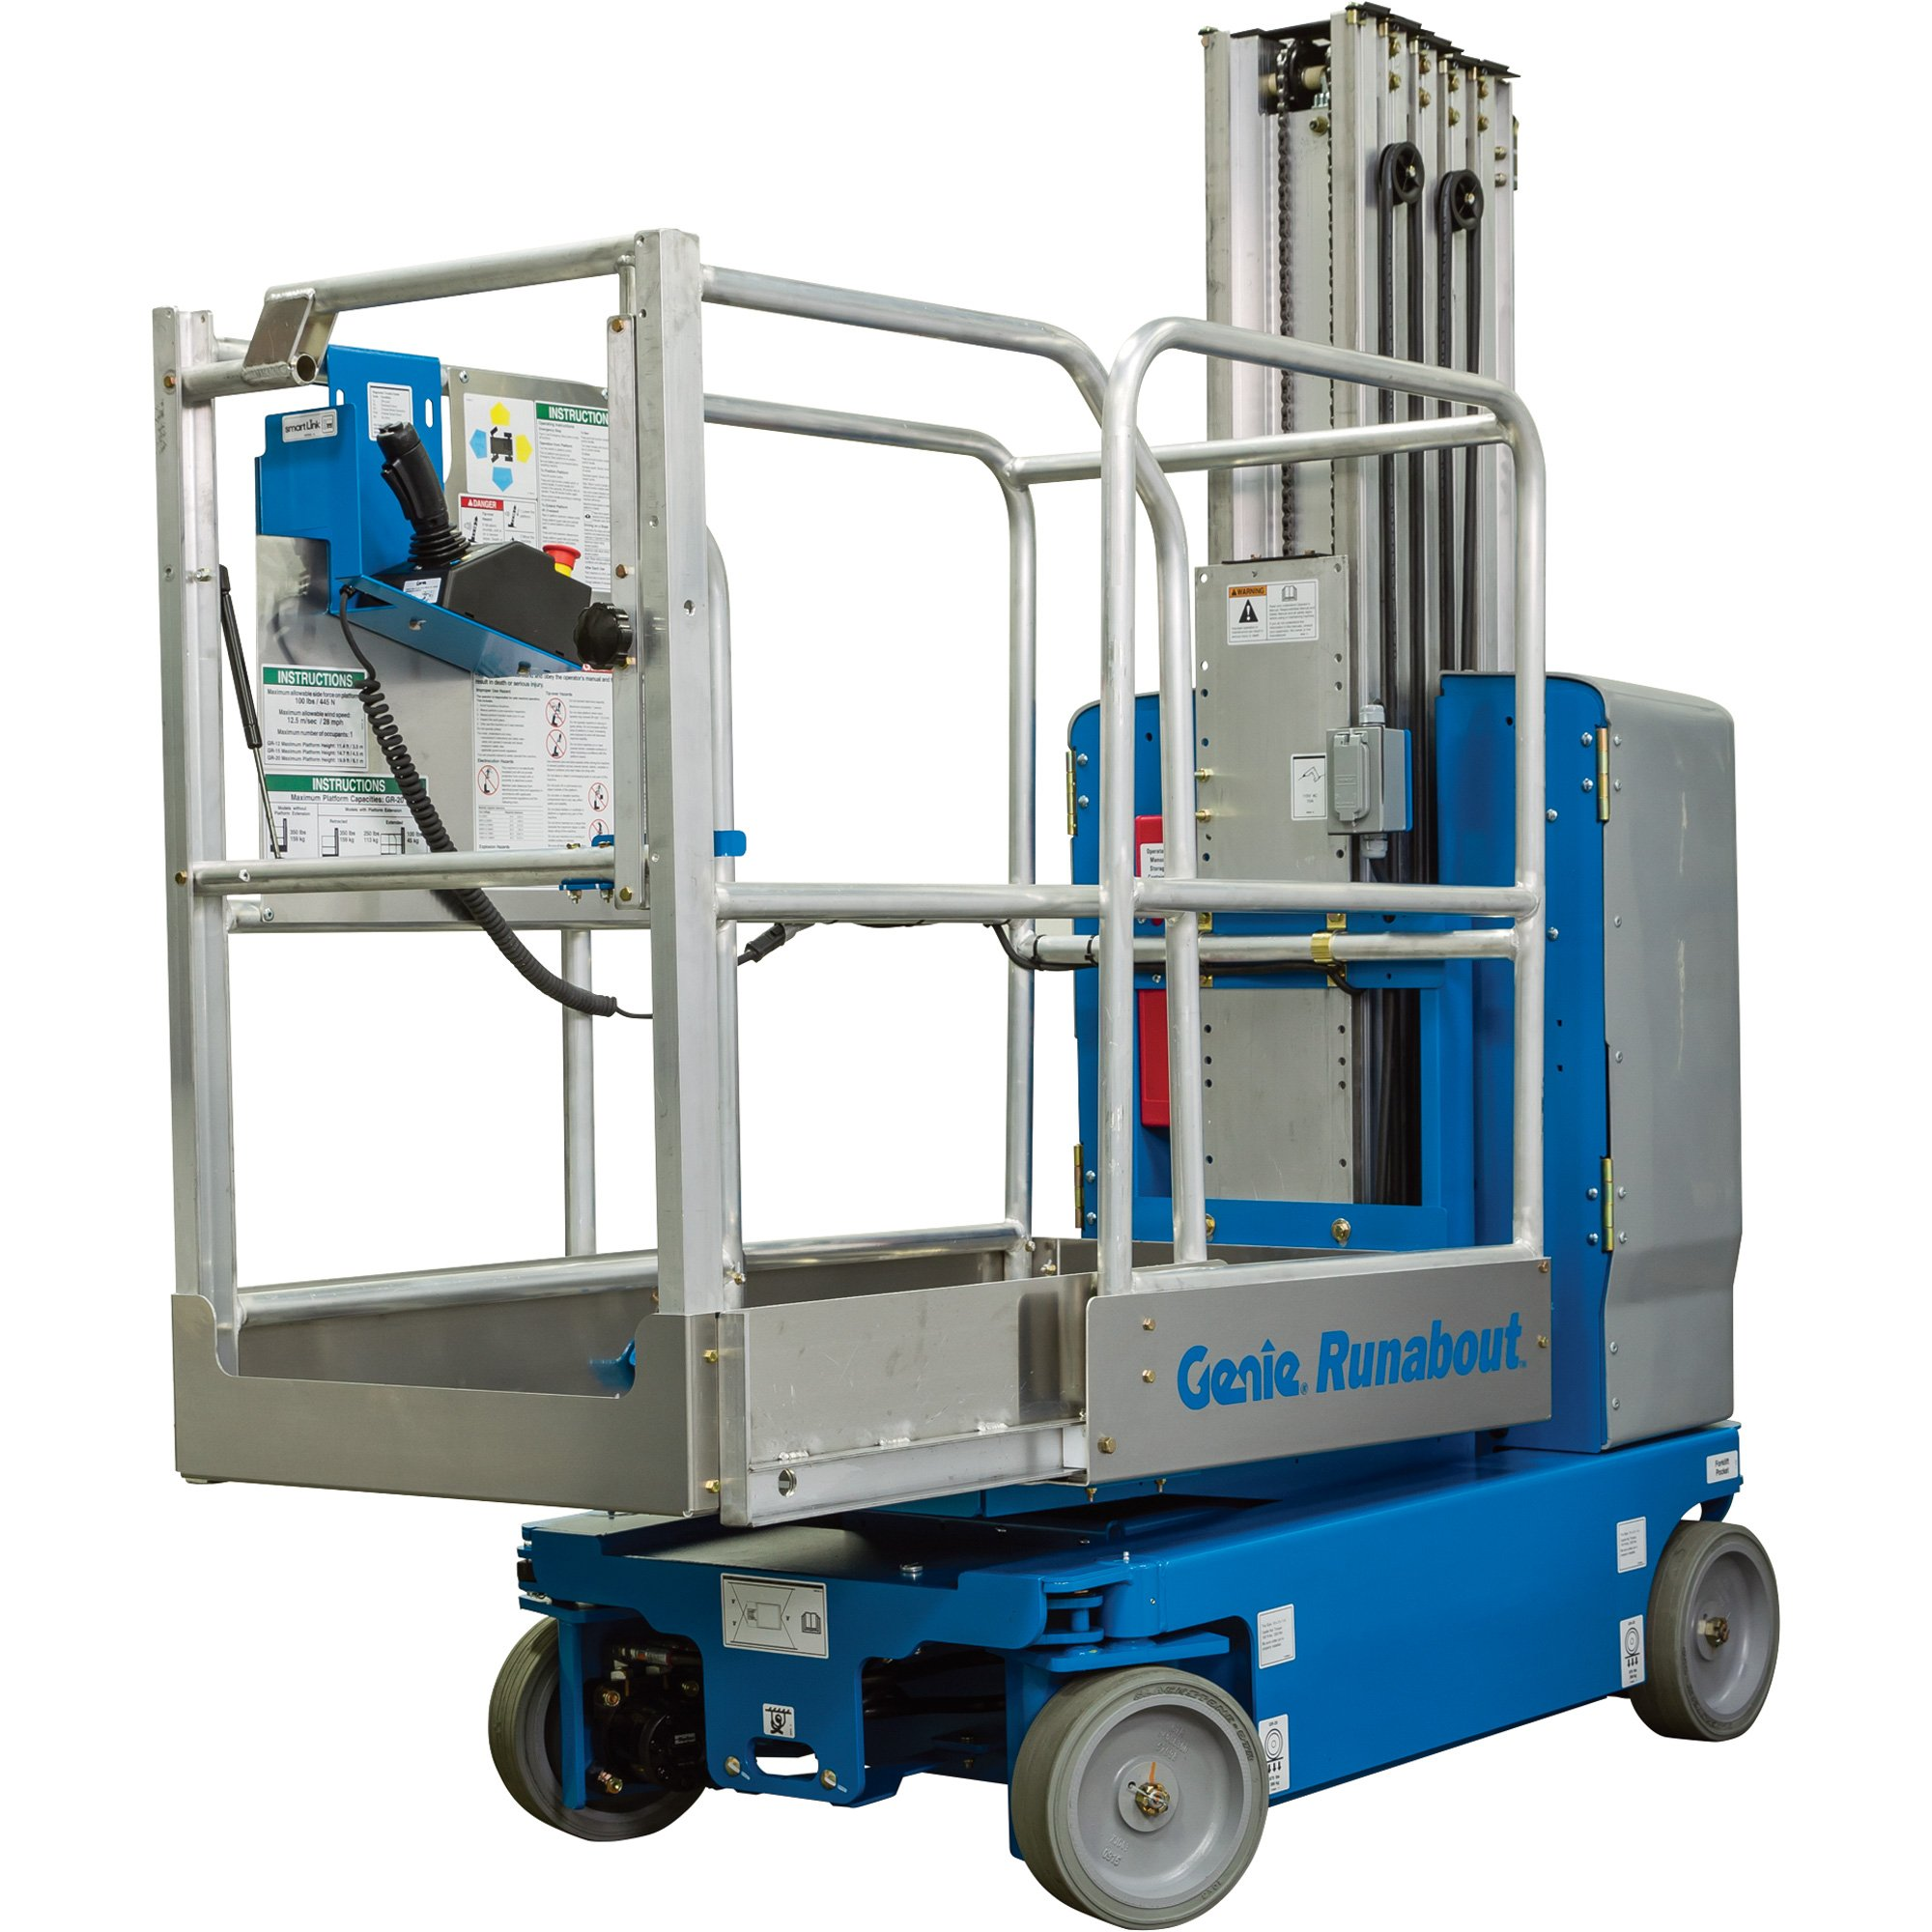 Genie Runabout Lift With Extension Deck 12ft Lift 500